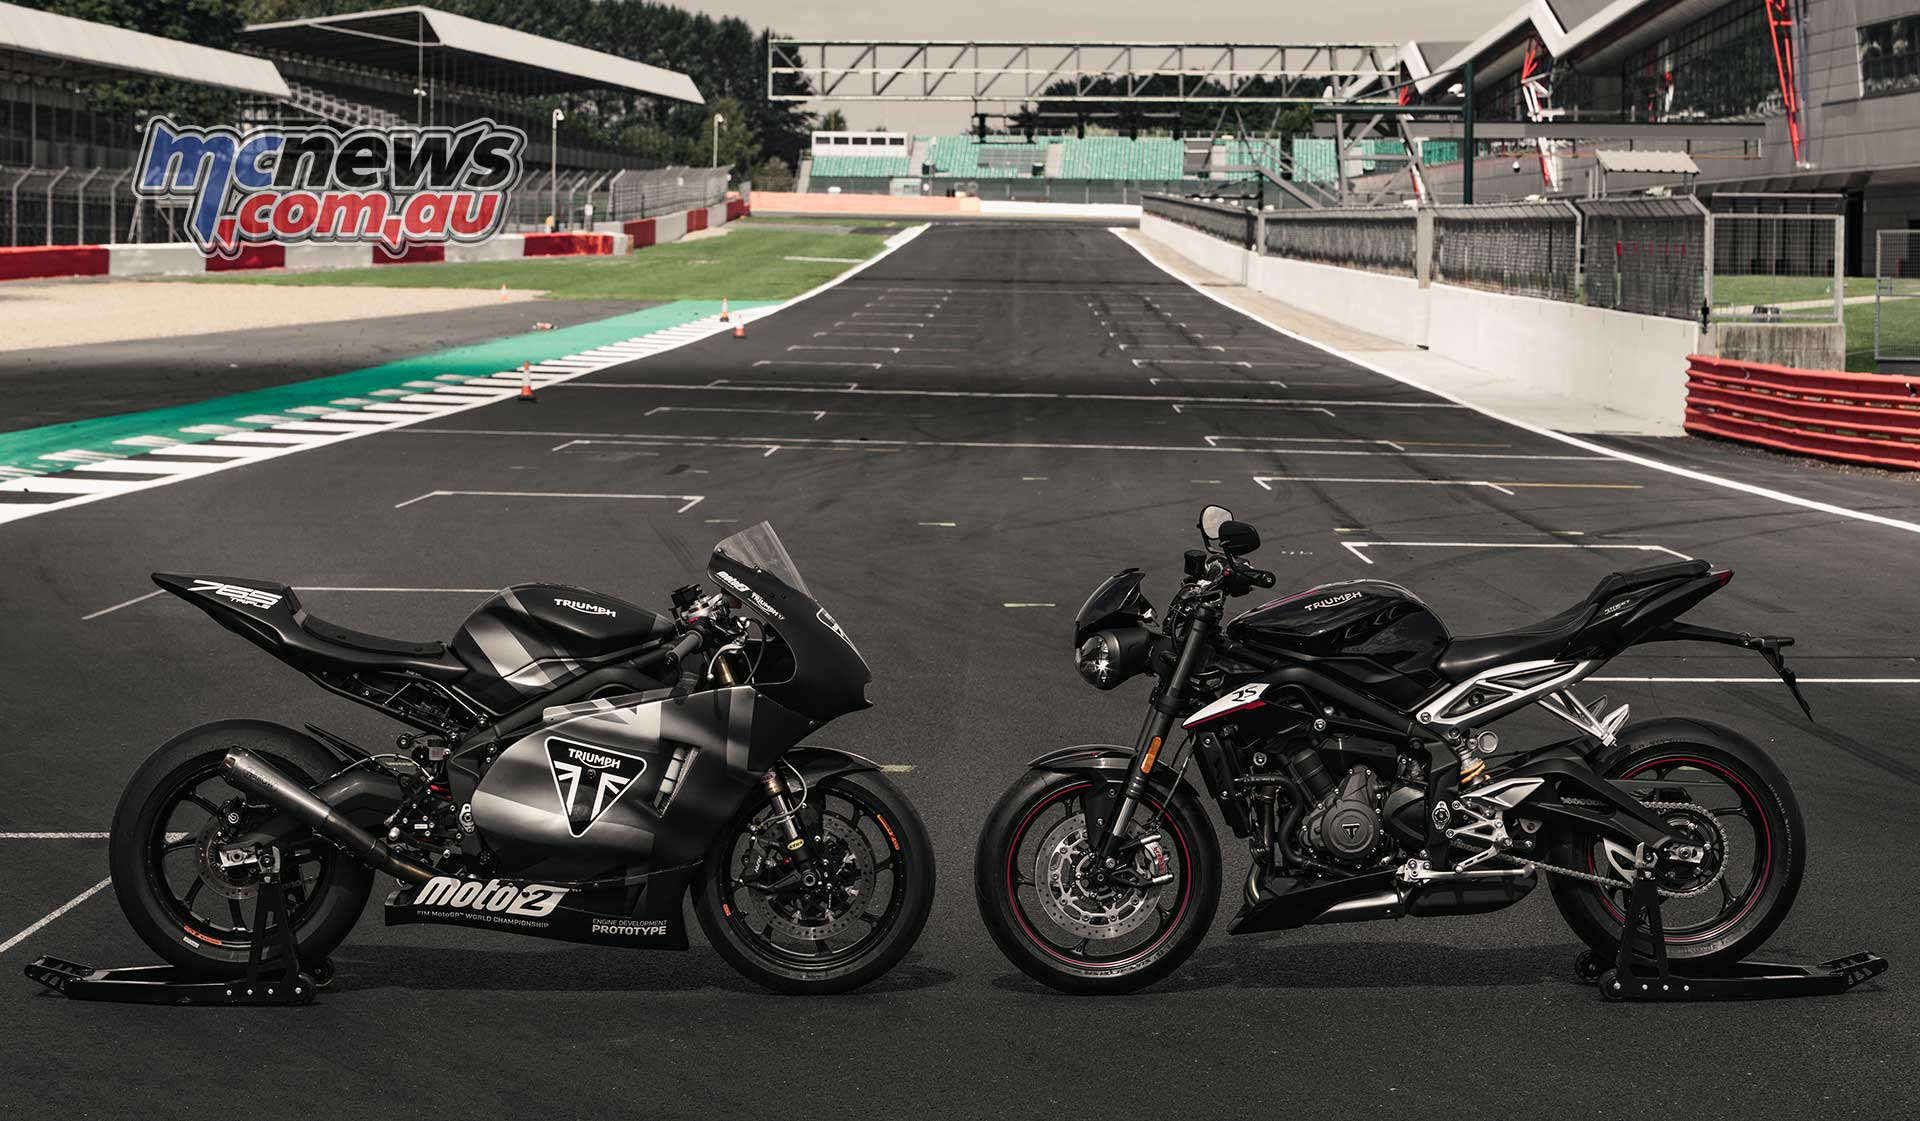 2d0c92aa7ab Triumph sportsbike spin-off from their Moto2 engine project ...